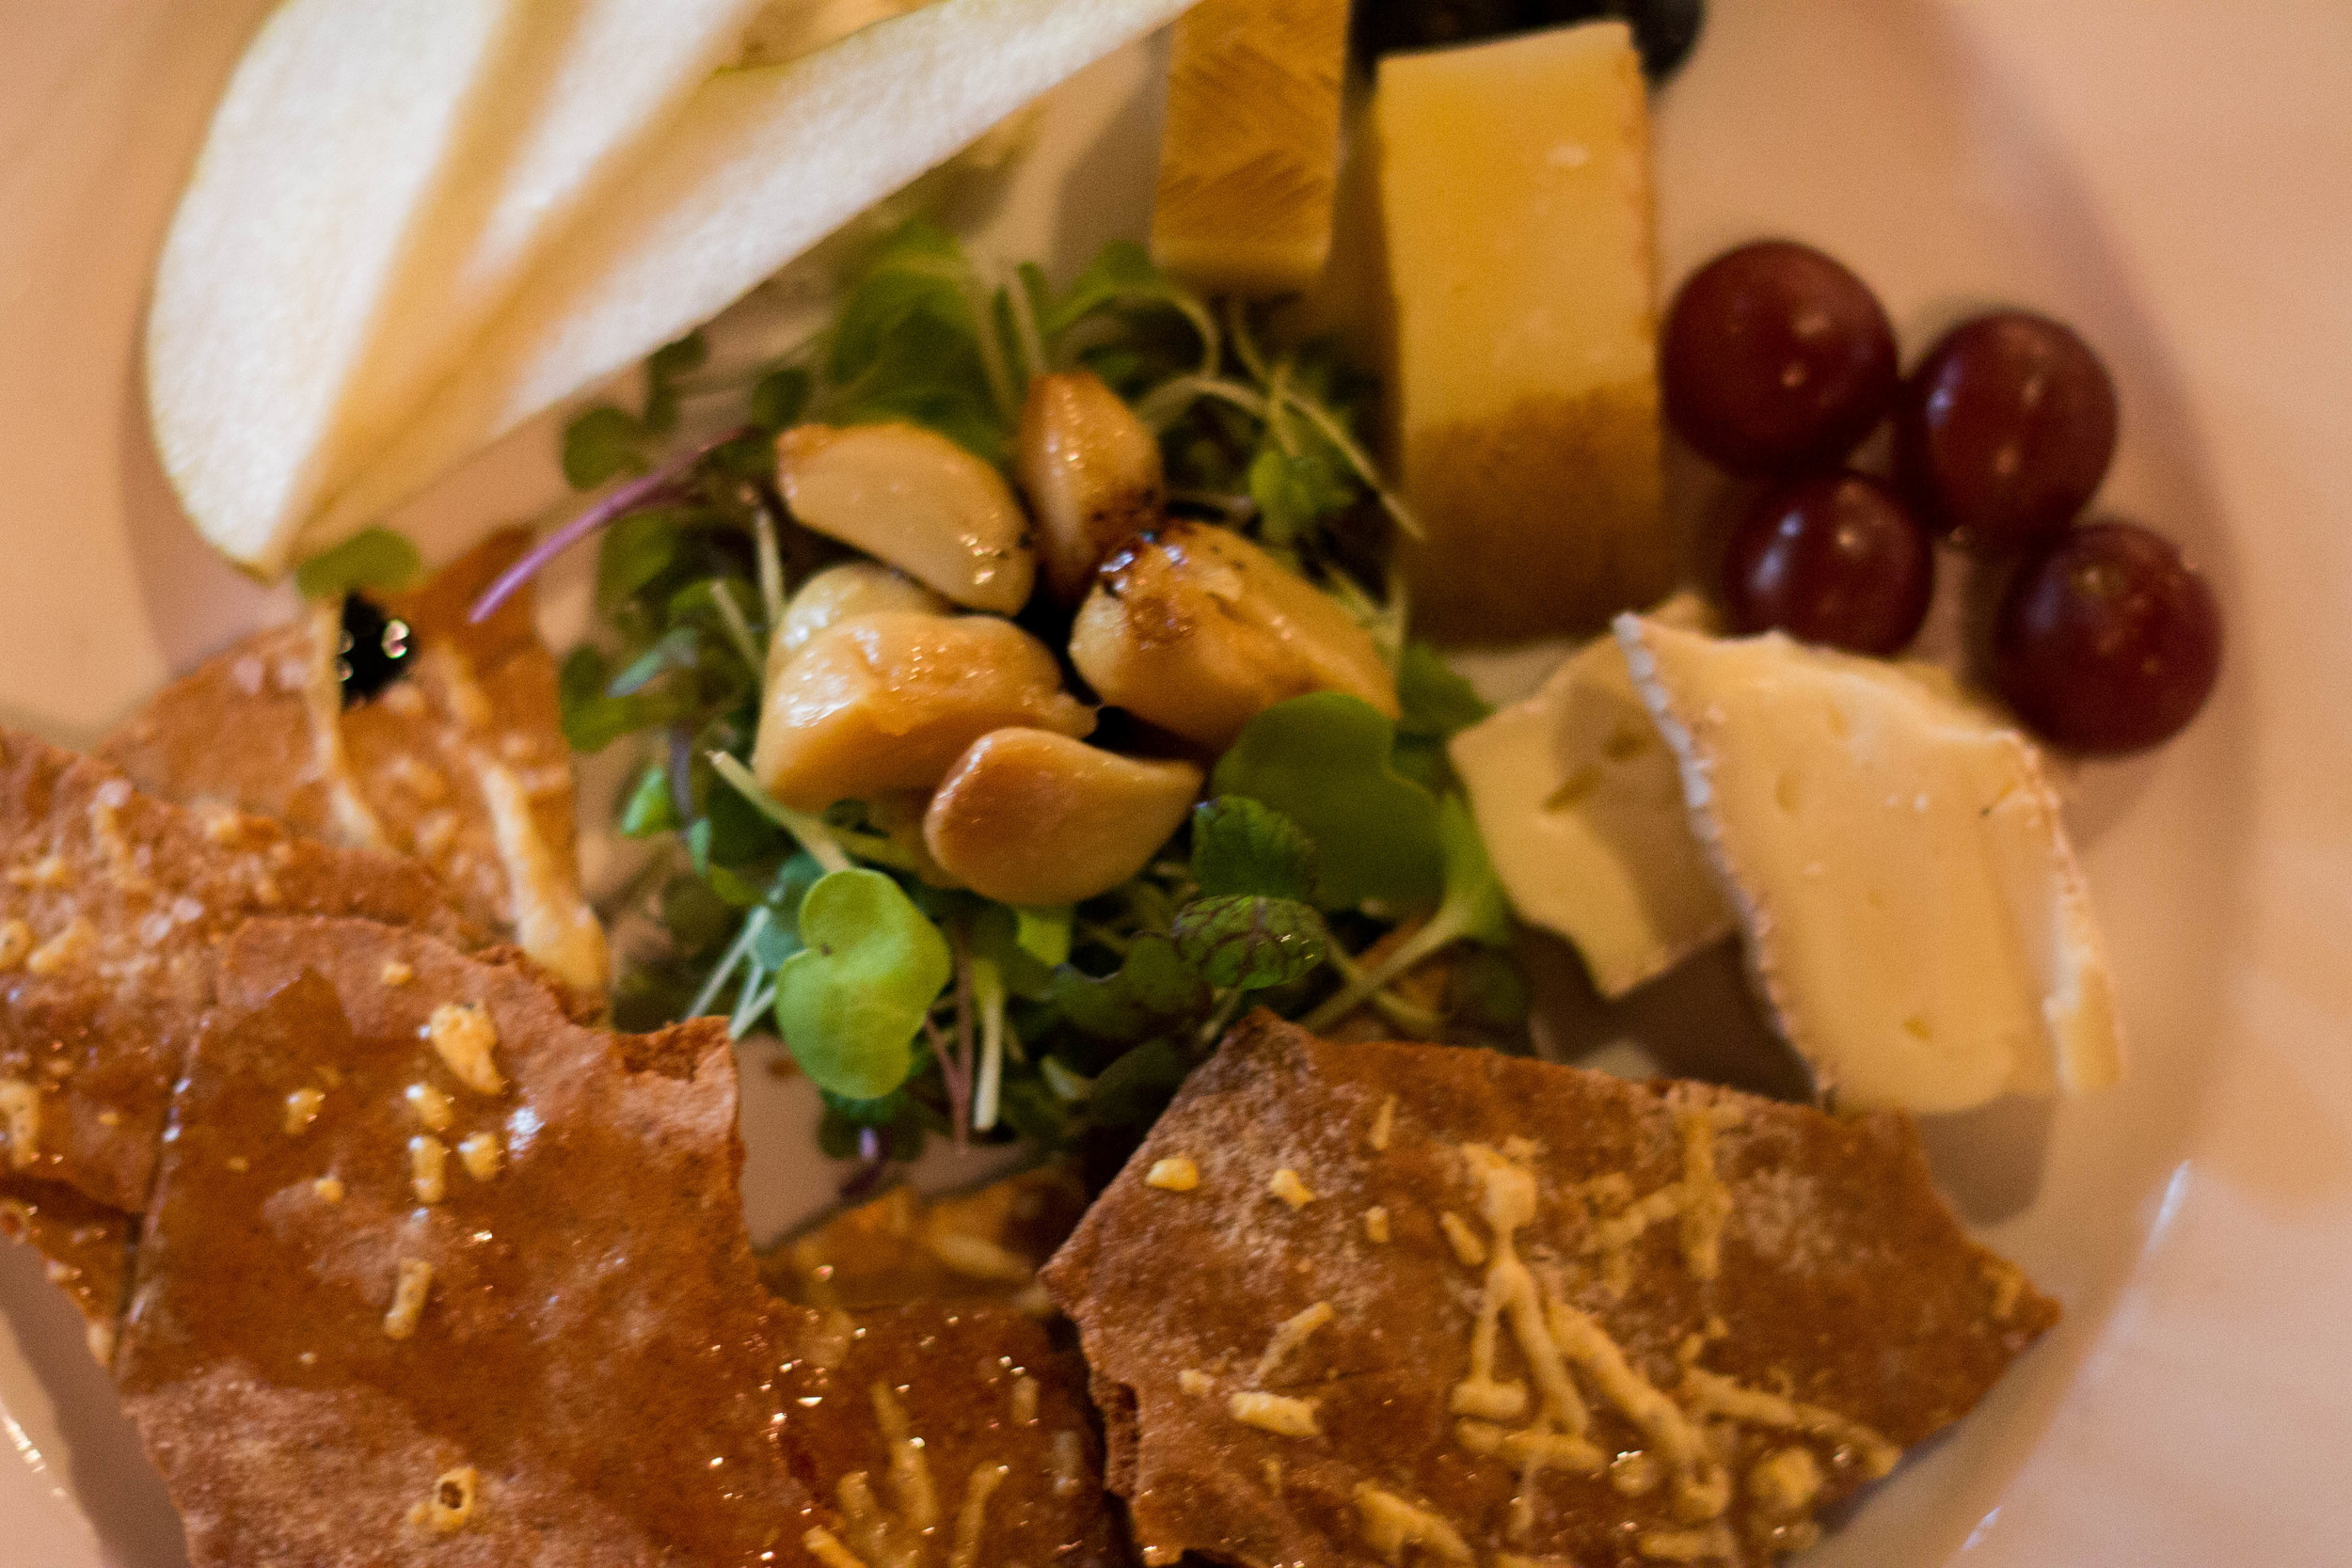 Build-your-own cheese plate at Westside Local